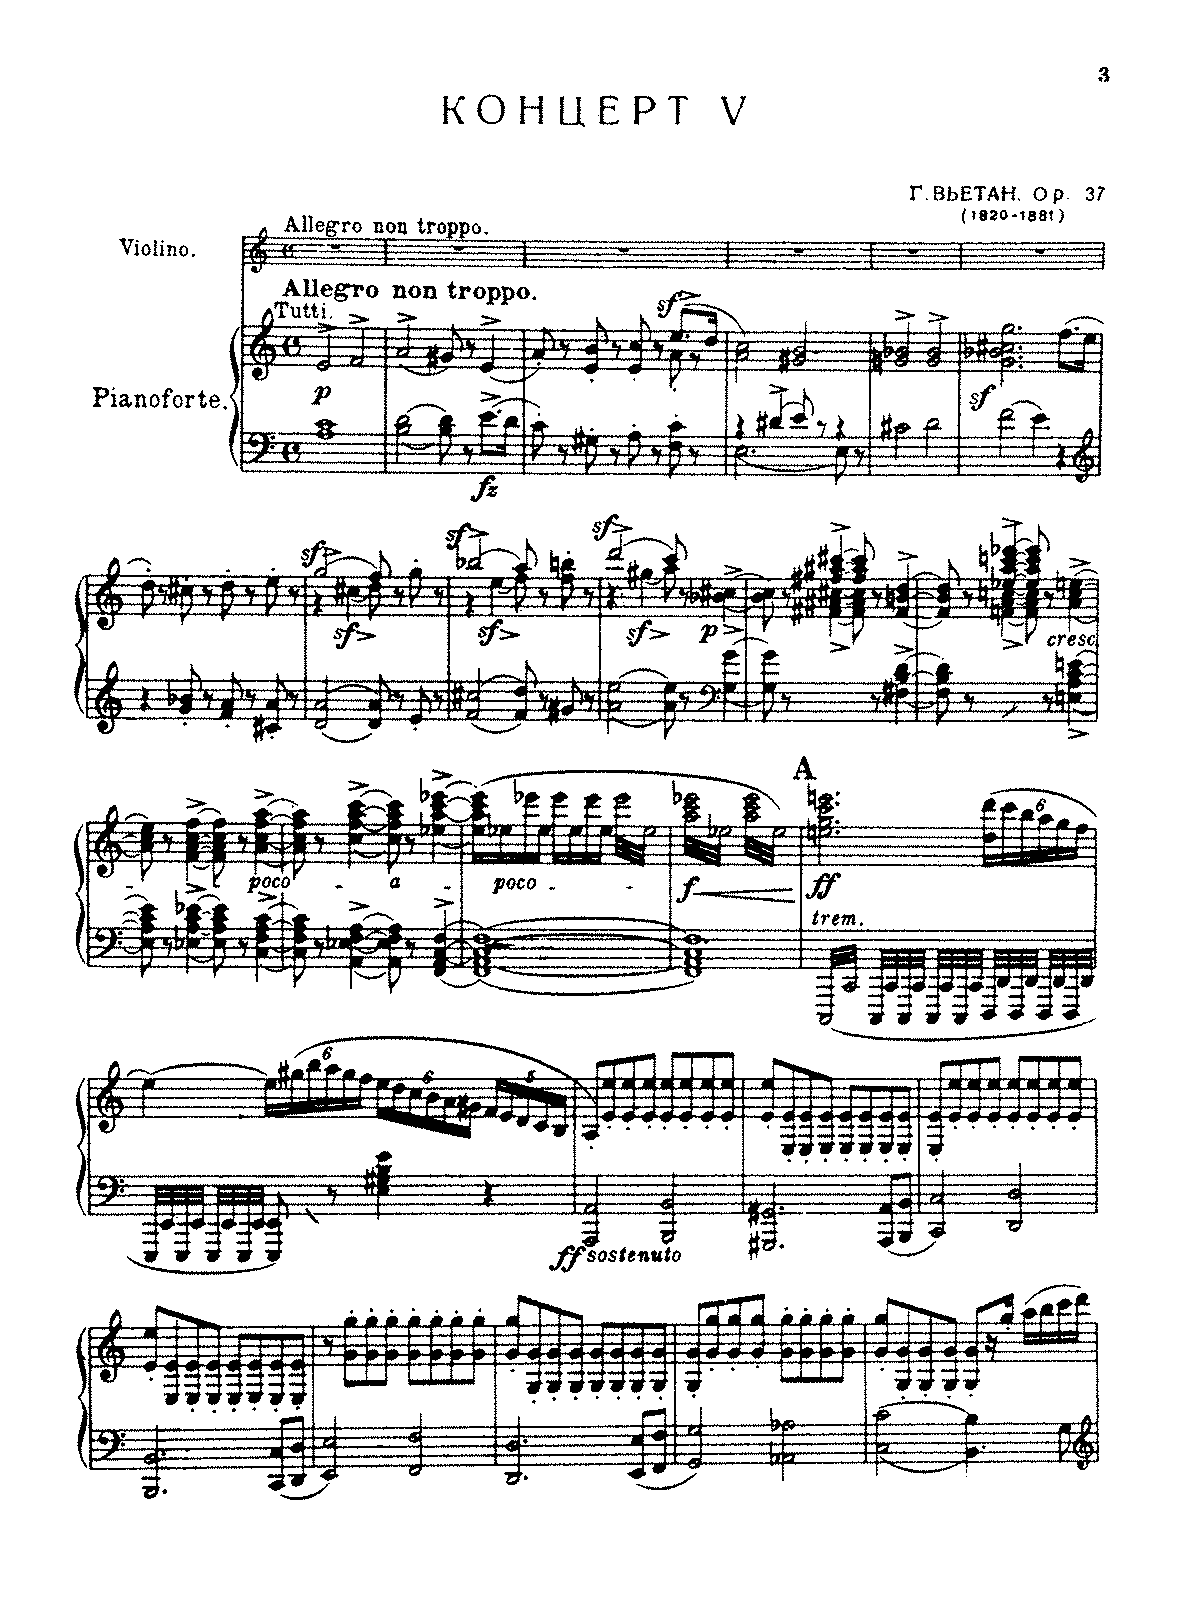 Violin Concerto No 5 in a, Op 37.pdf